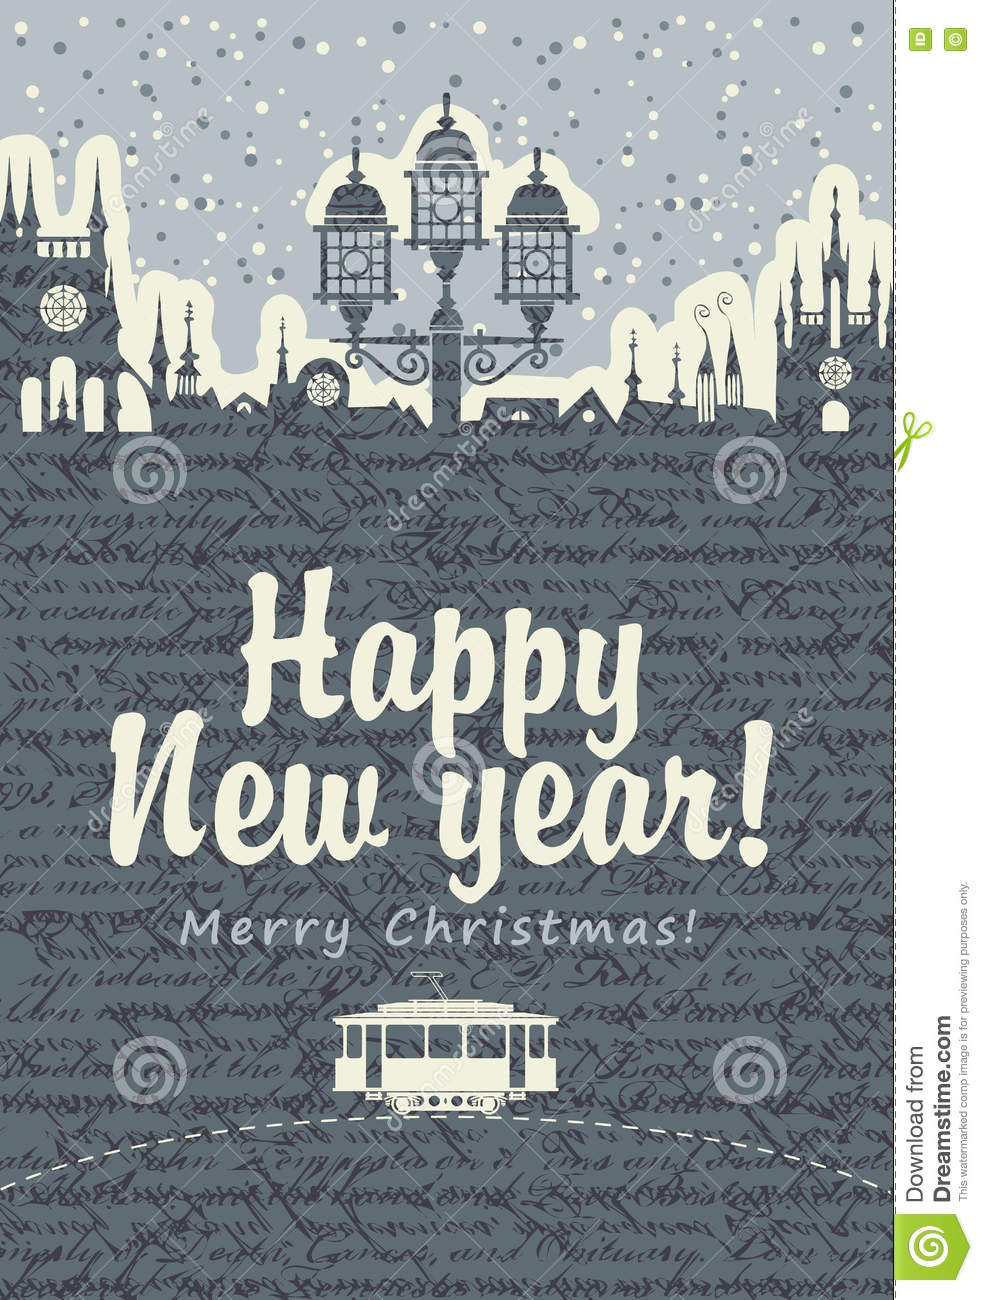 Christmas Card With An Old Tram Stock Vector - Illustration of ...